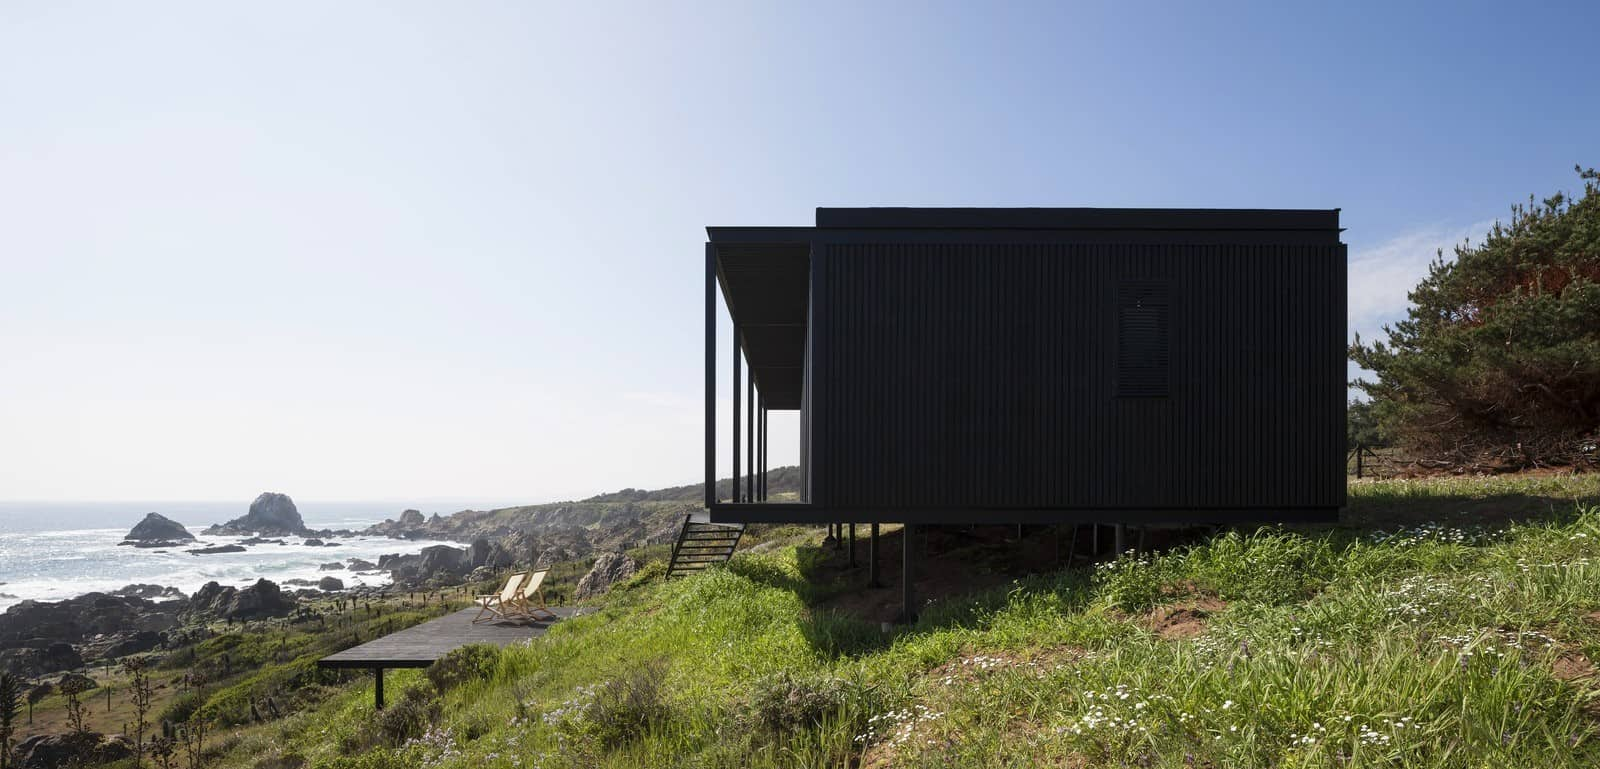 Remote Transportable Modular House in Chile by Felipe Assadi 5